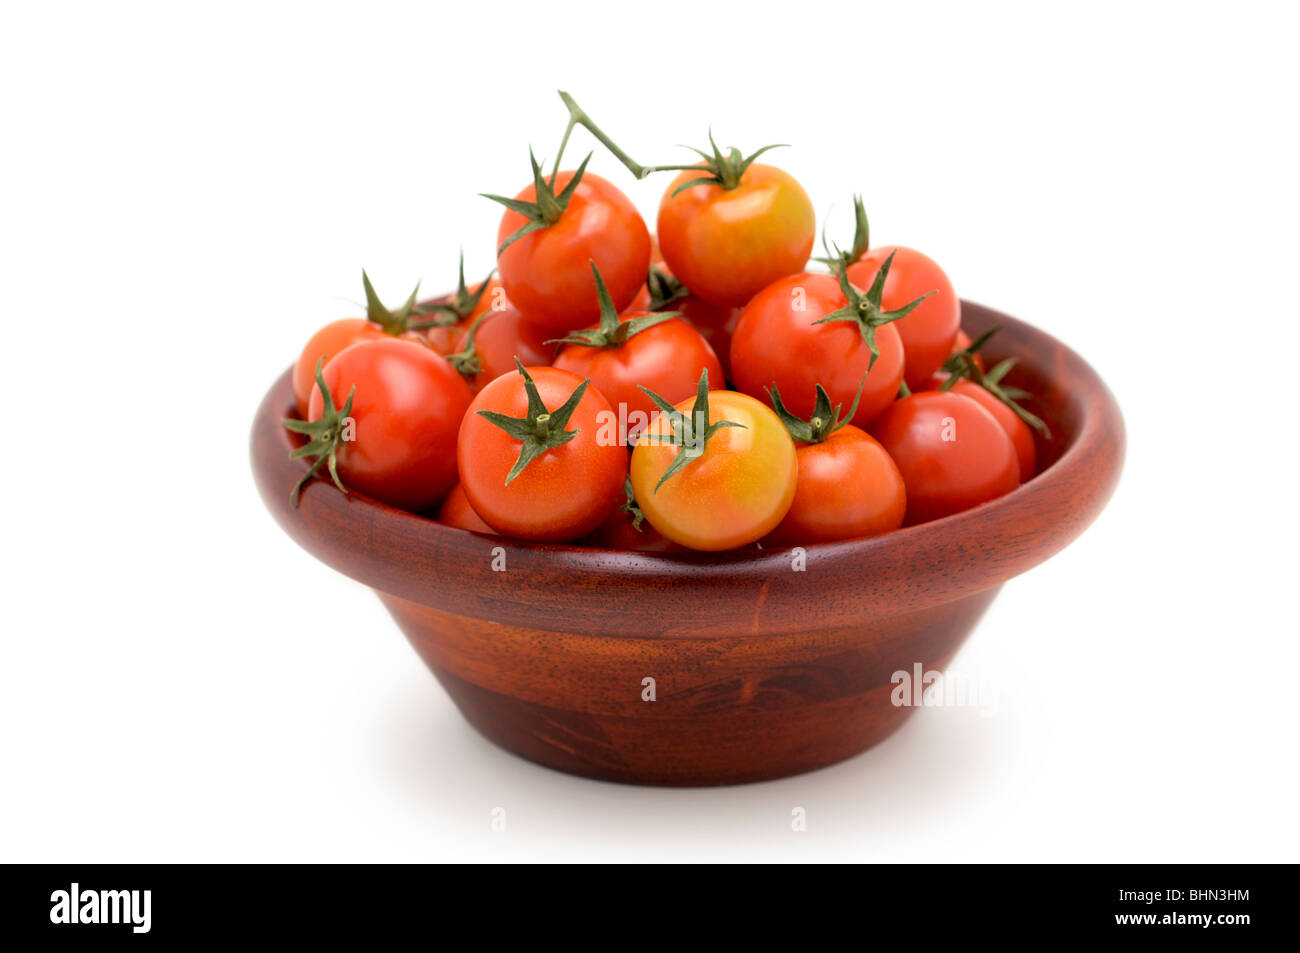 Cherry Tomatoes in Wooden Bowl - Stock Image